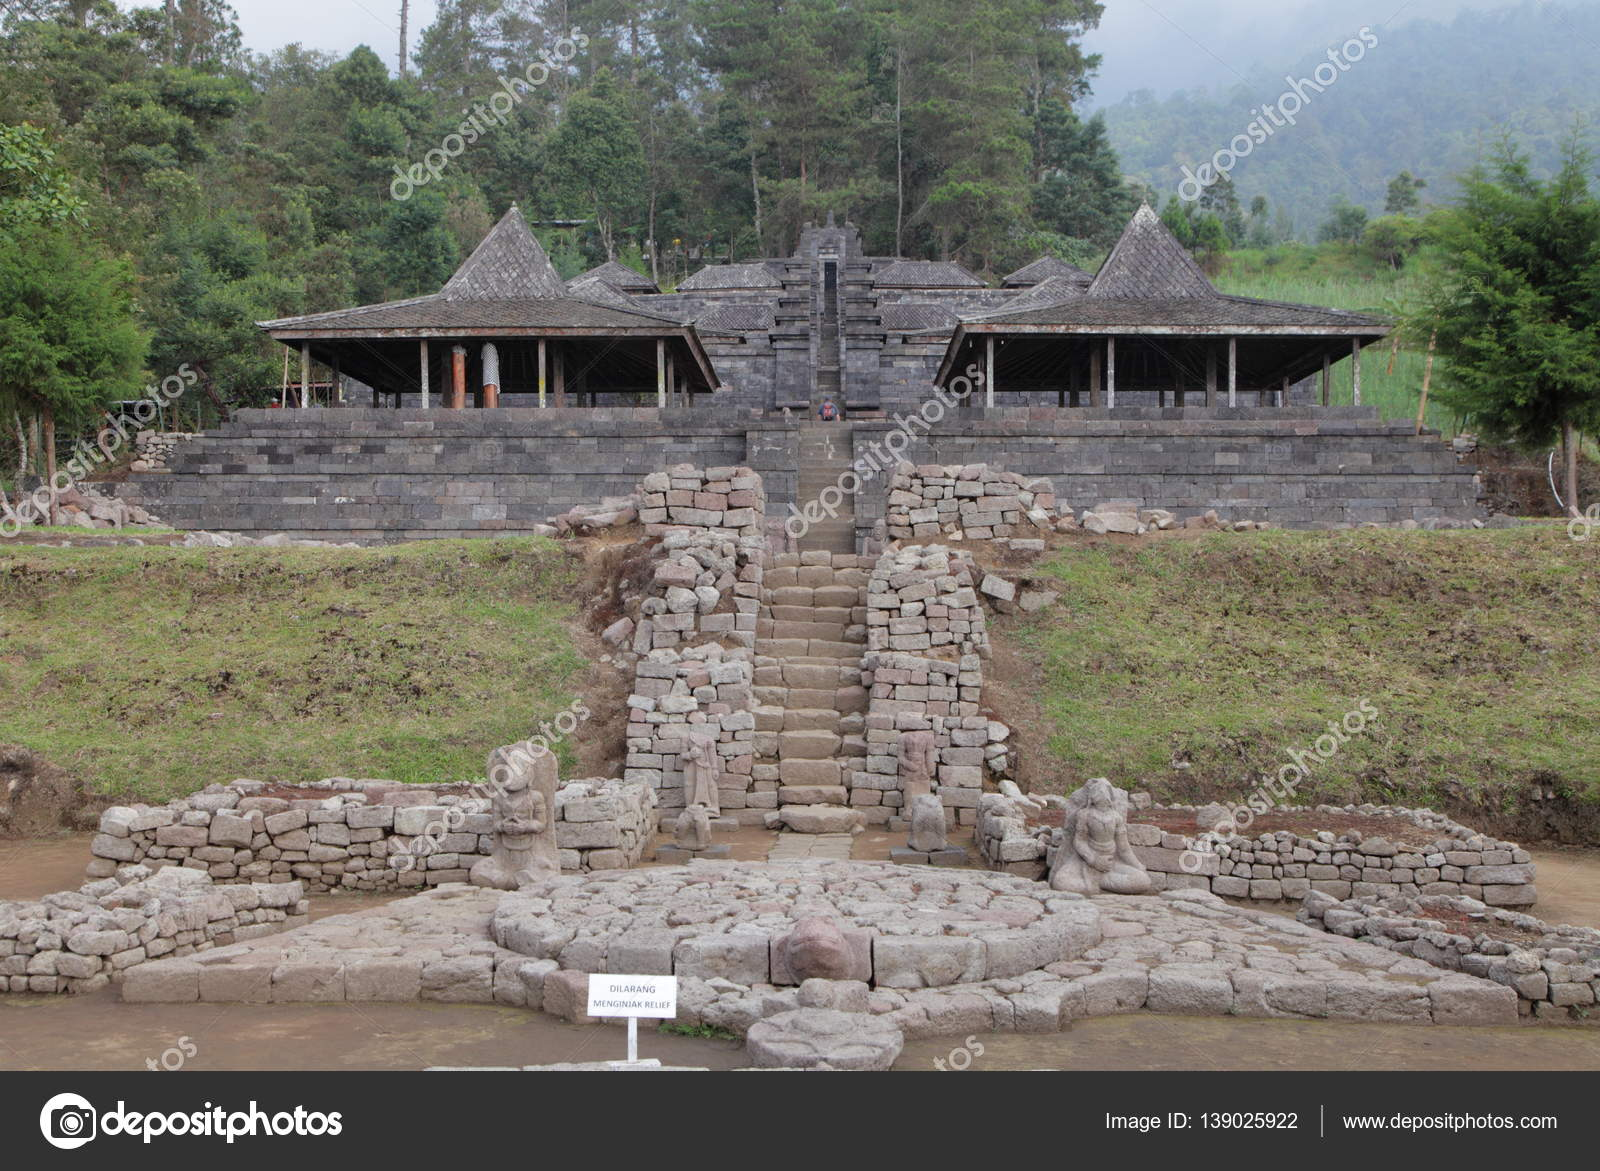 Candi Cetho Ancient Hindu Temple Stock Photo C Yurybirukov 139025922